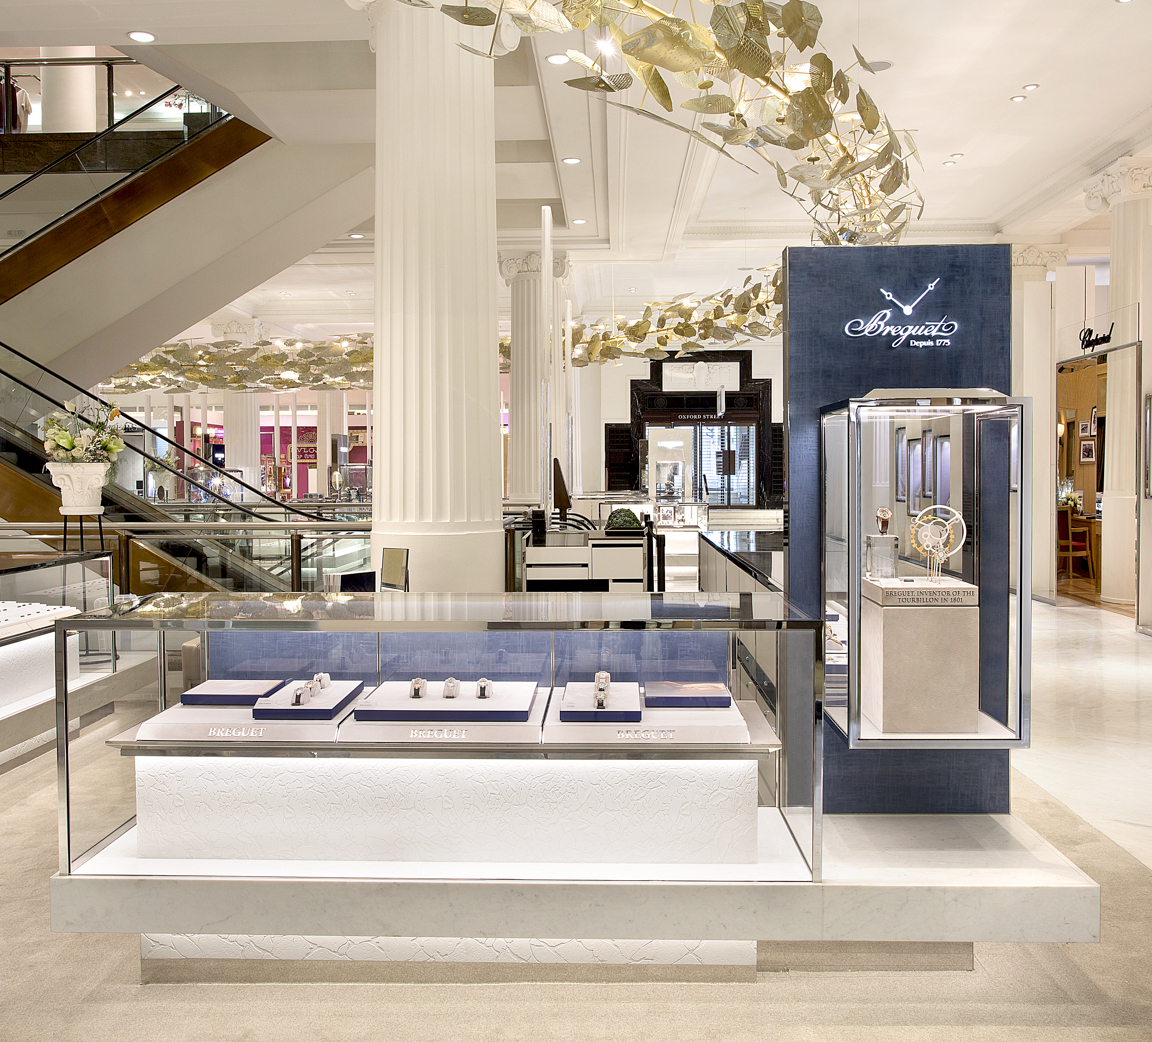 Breguet Point of Sale with Bucherer 1888 at Selfridges_2_72DPI